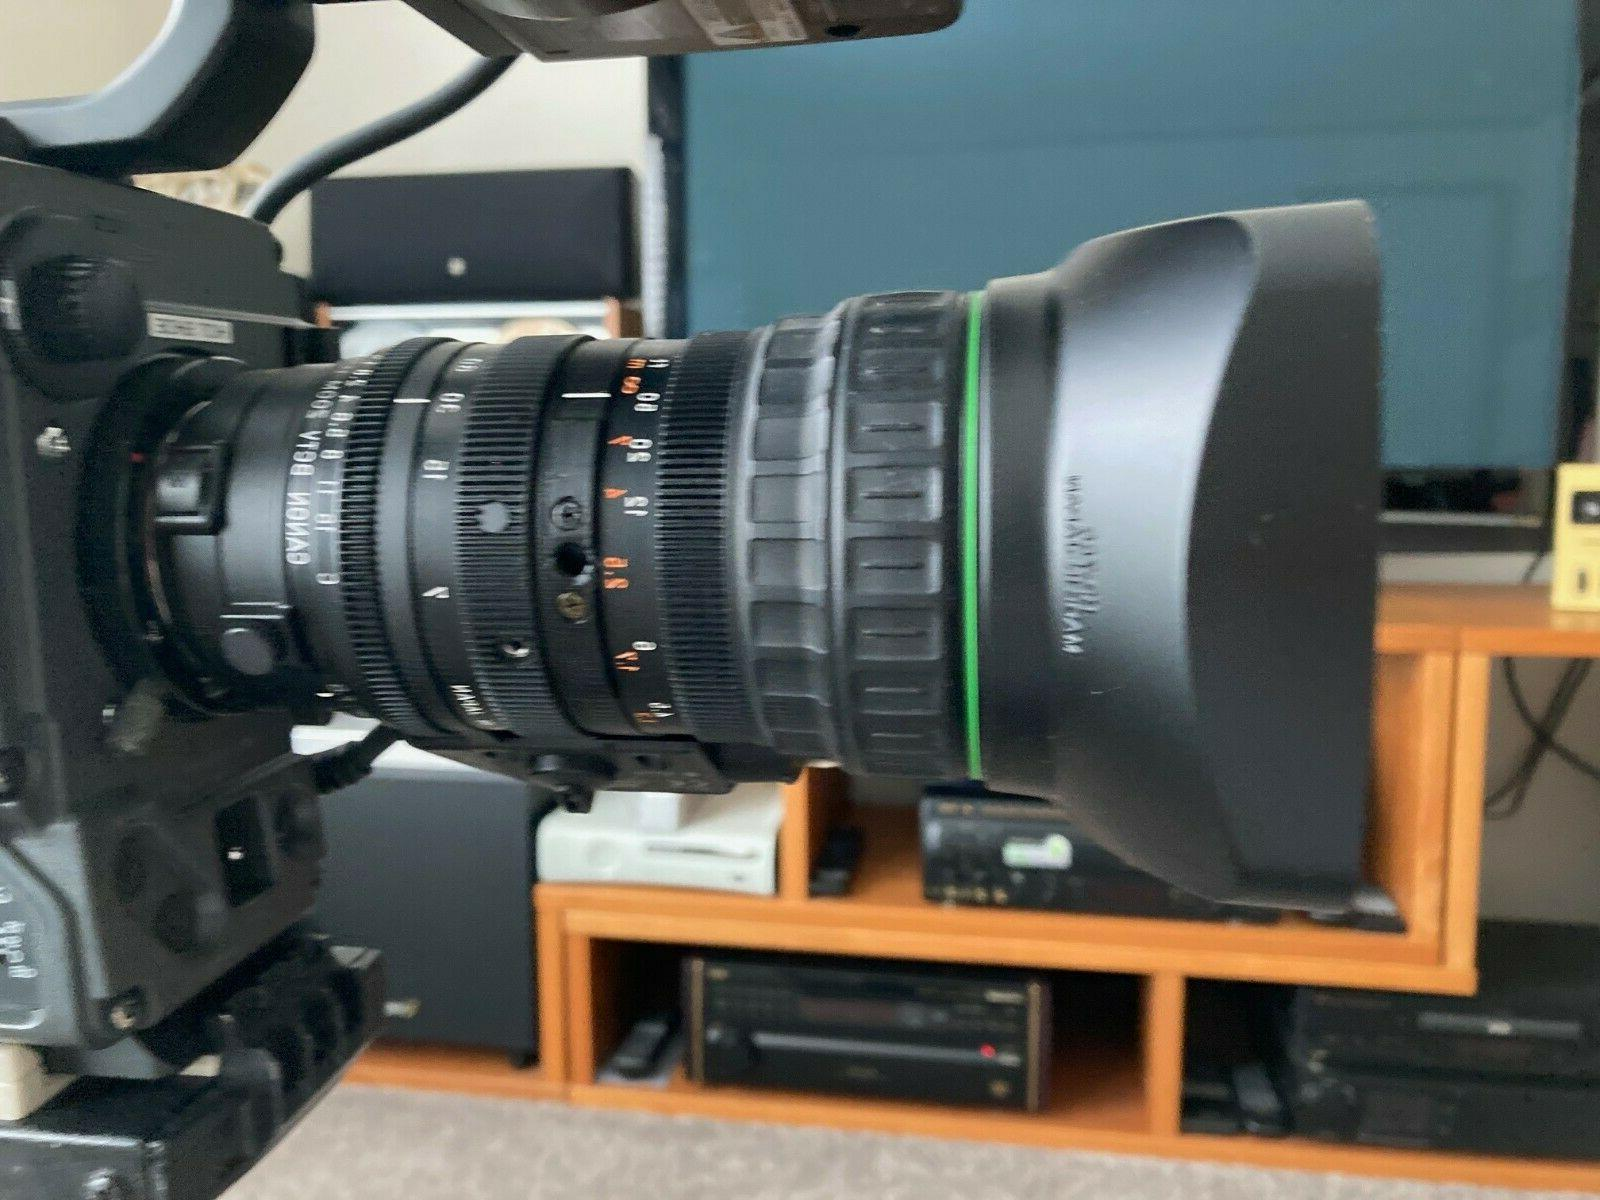 SONYdxc-327a video lens